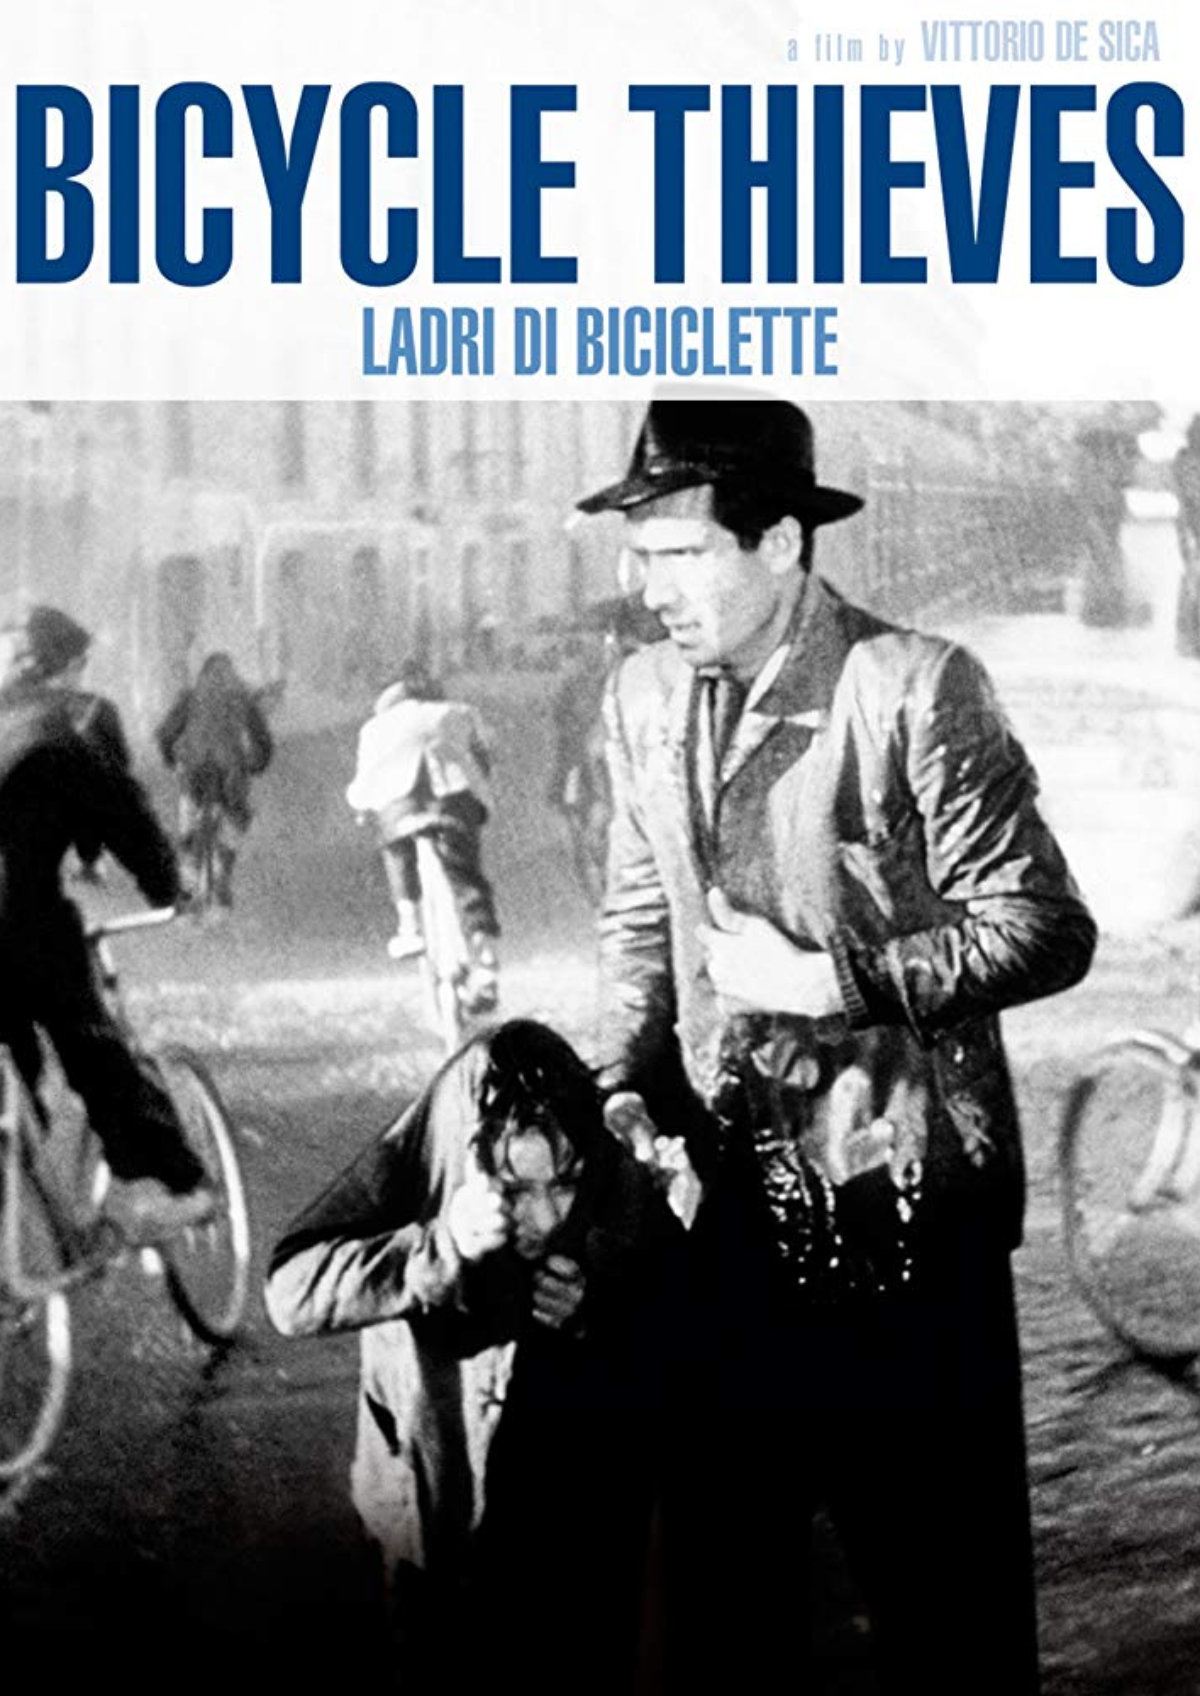 'Bicycle Thieves (Ladri di biciclette)' movie poster